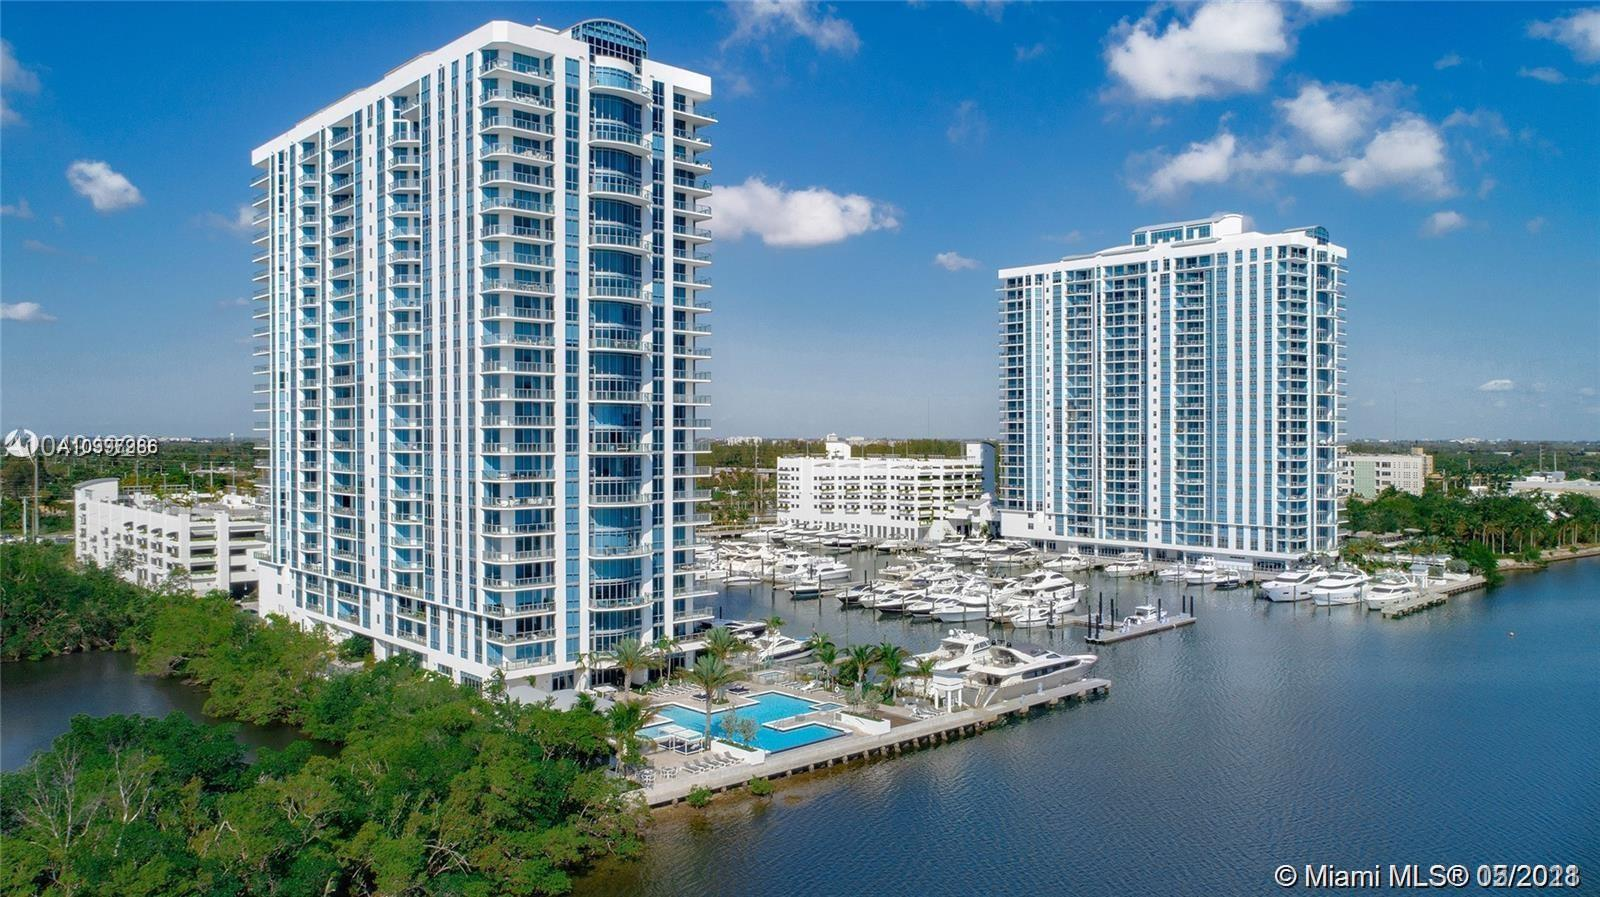 Marina Palms 2 #1407 - 17301 Biscayne Blvd #1407, North Miami Beach, FL 33160